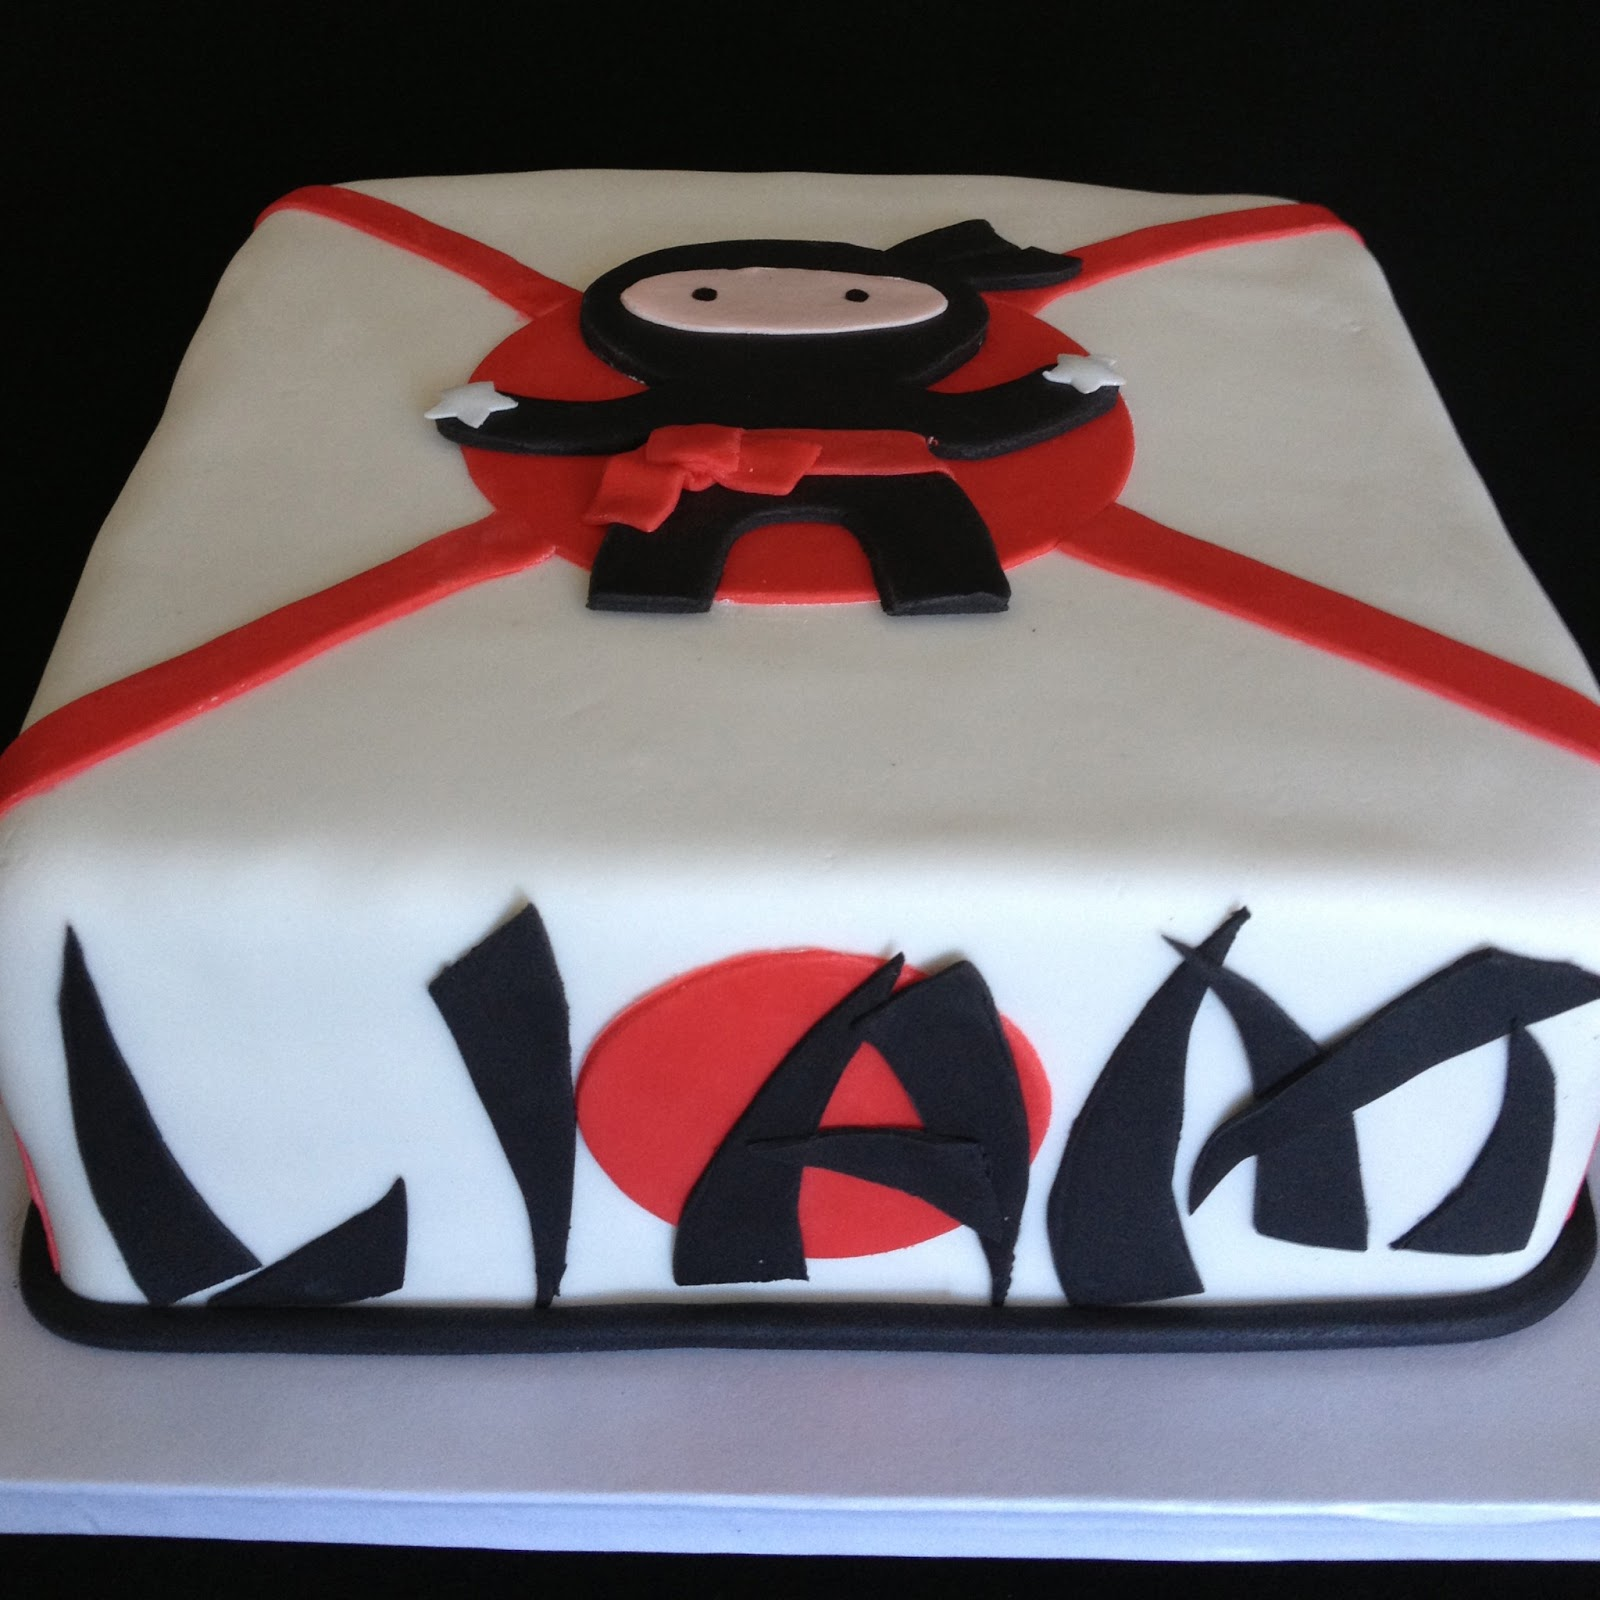 Laser Tag Themed Cake